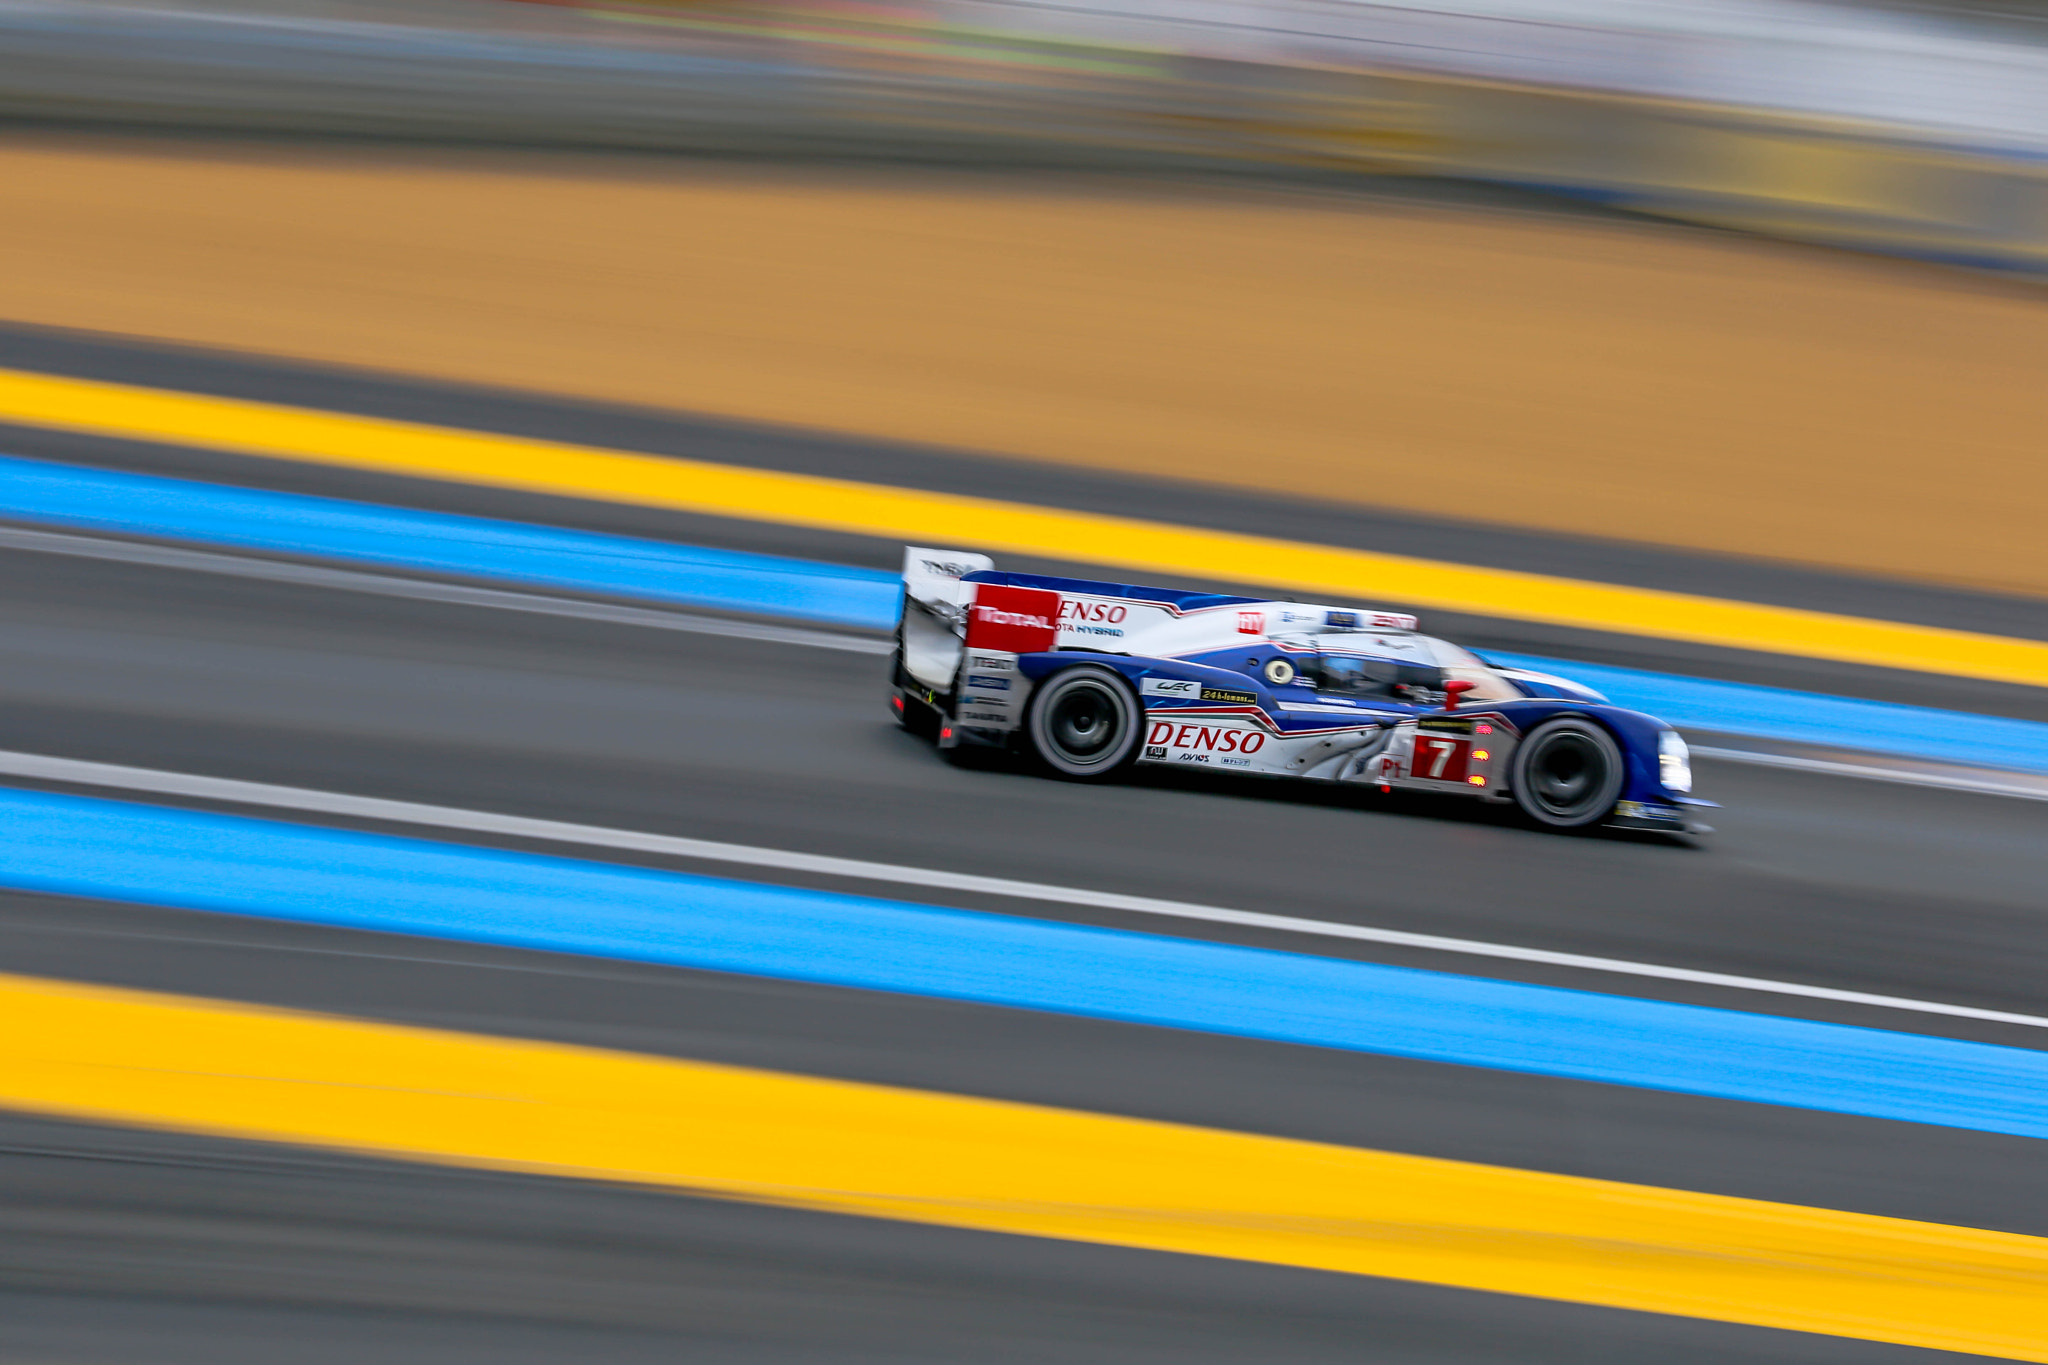 Photograph Toyota TS030 - 24h du Mans 2013 by Bruno Vandevelde on 500px